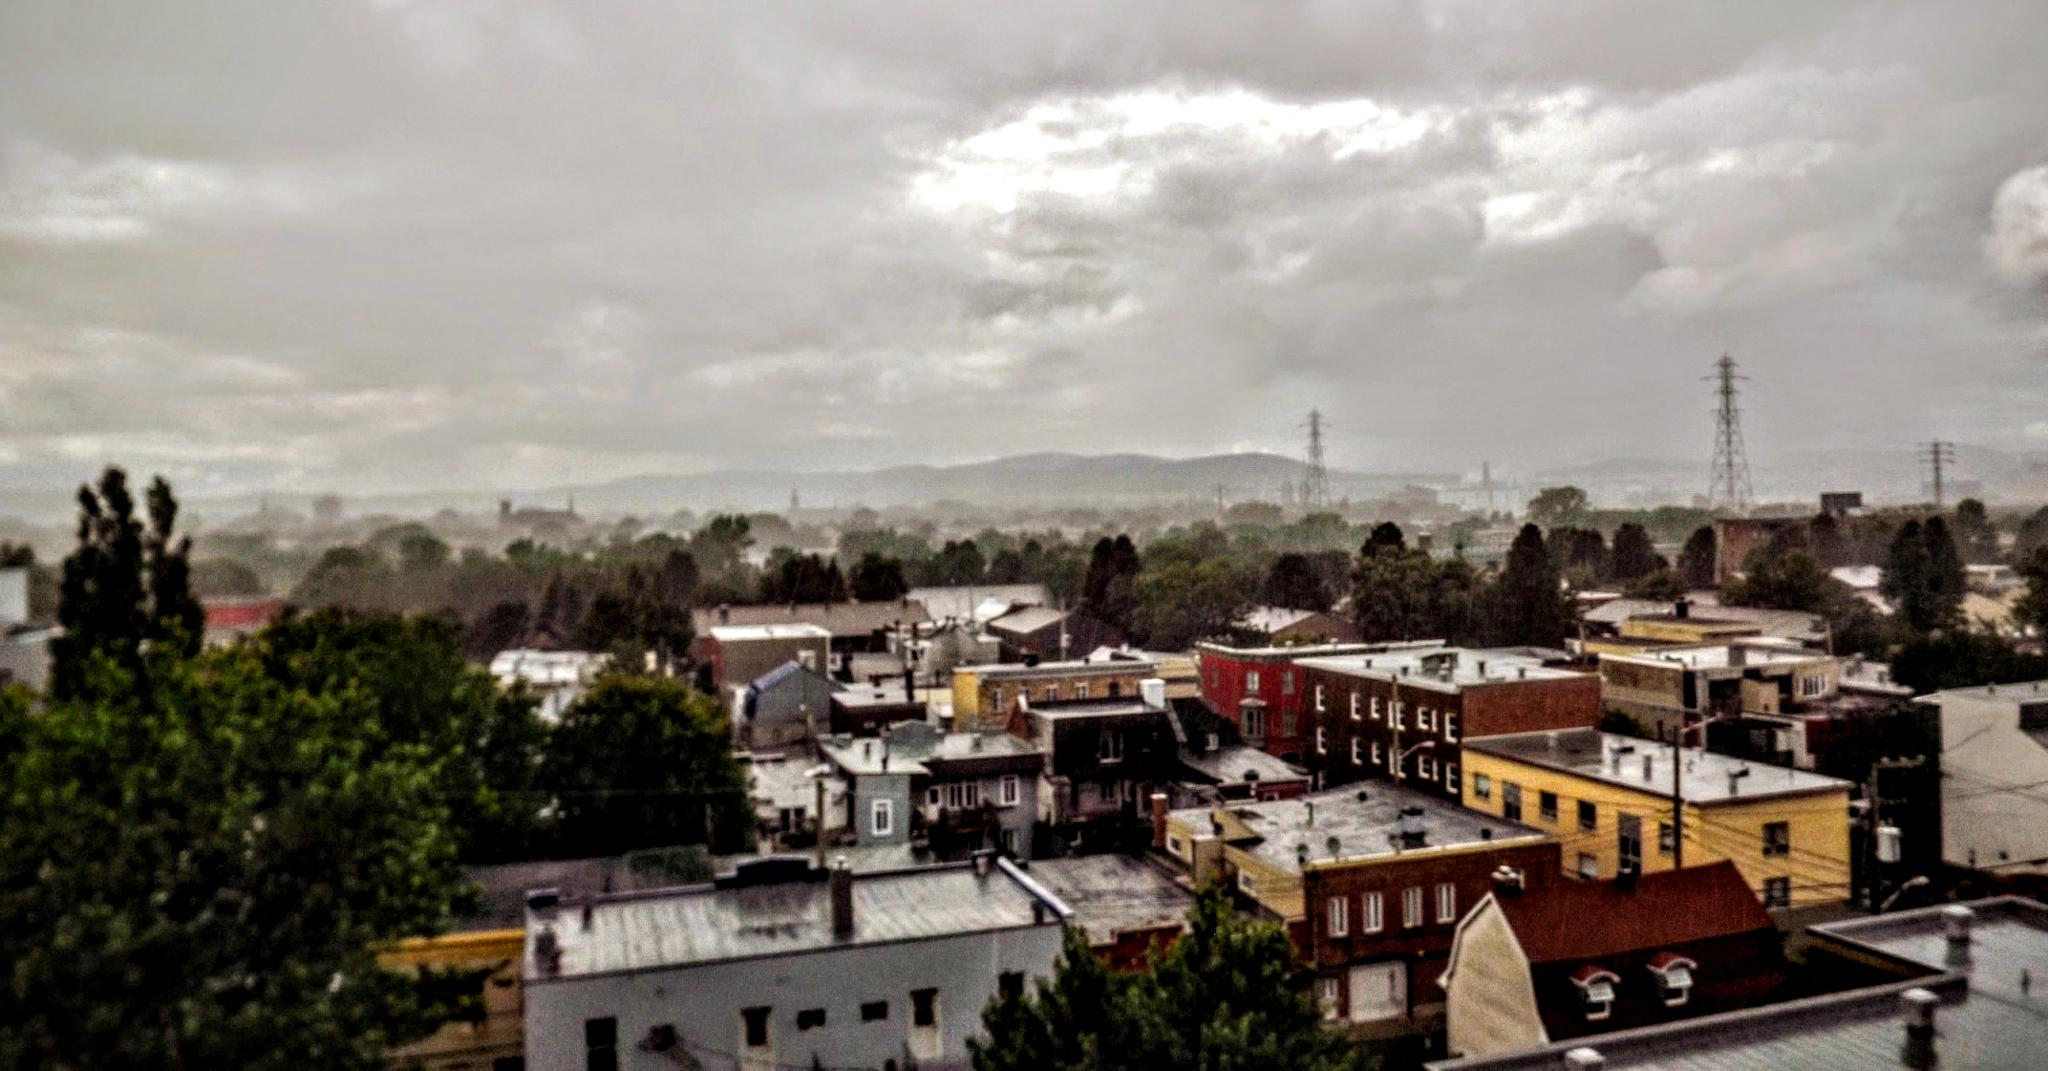 Downtown rainy day by real.michaud.5036